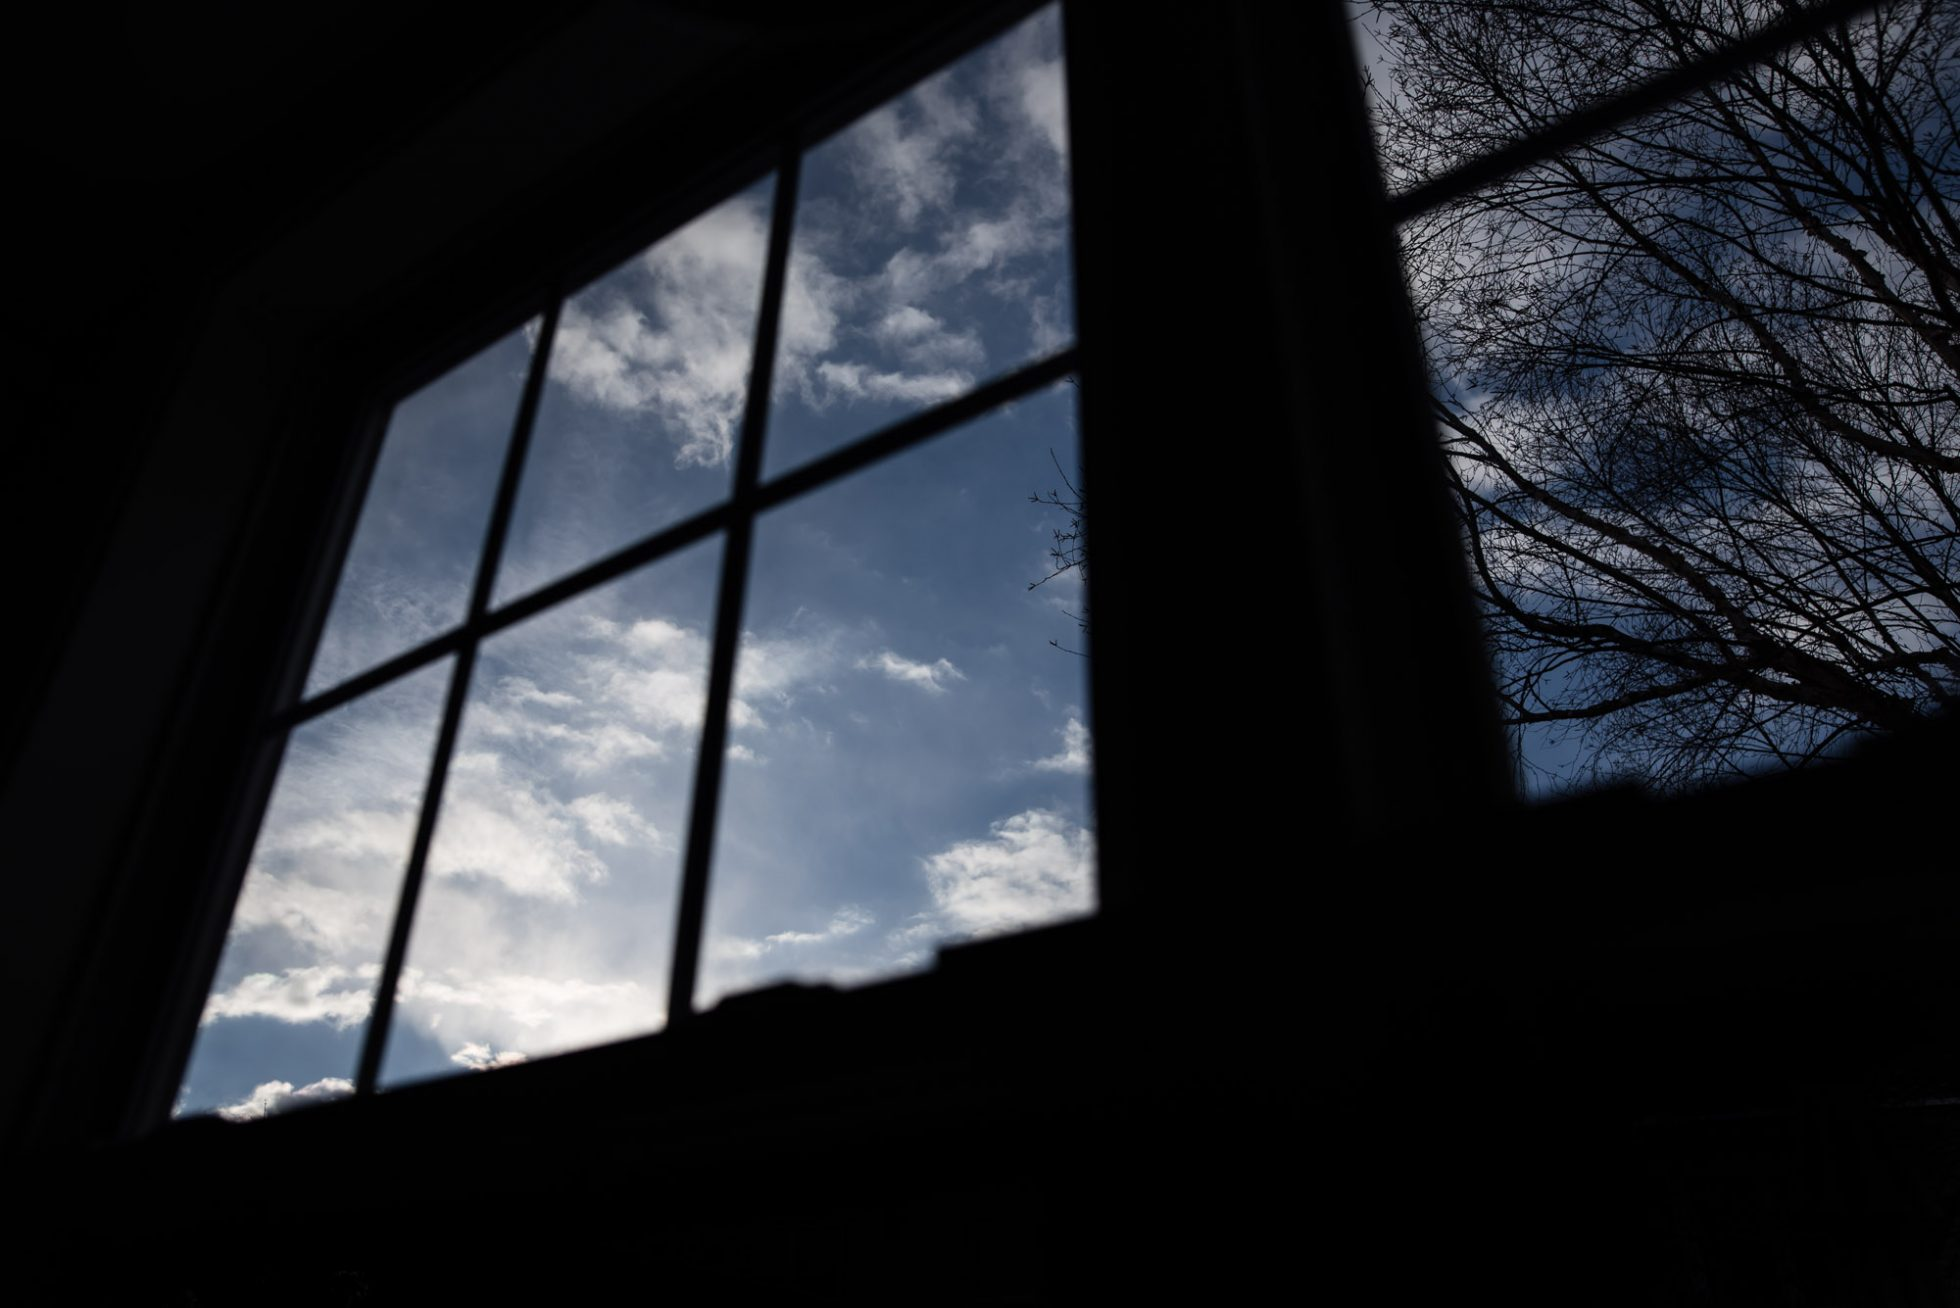 Silhouette of window with blue sky and clouds photograph by megan cieloha